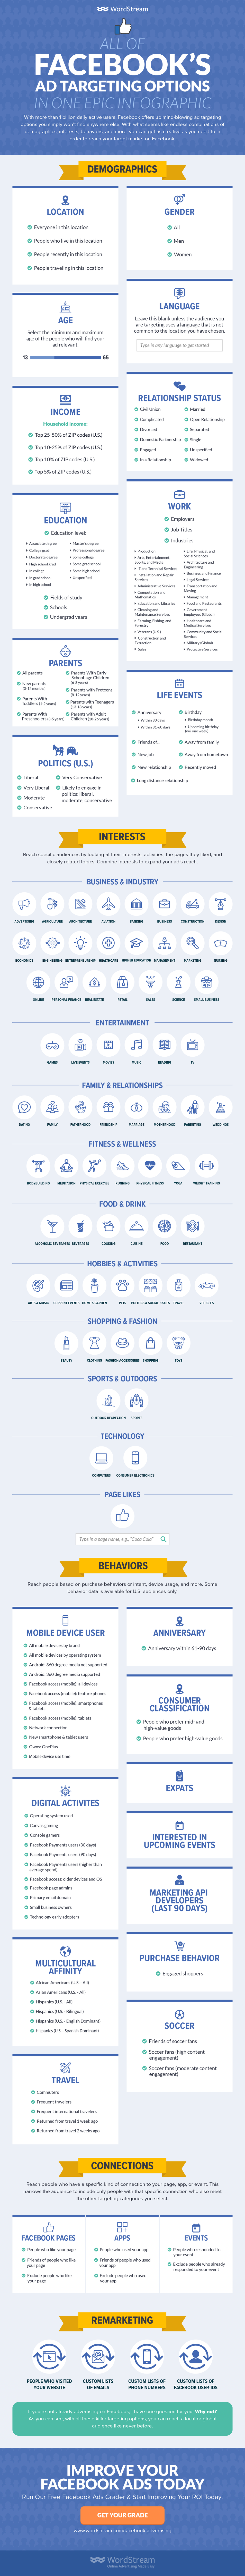 Facebook ad targeting options infographic